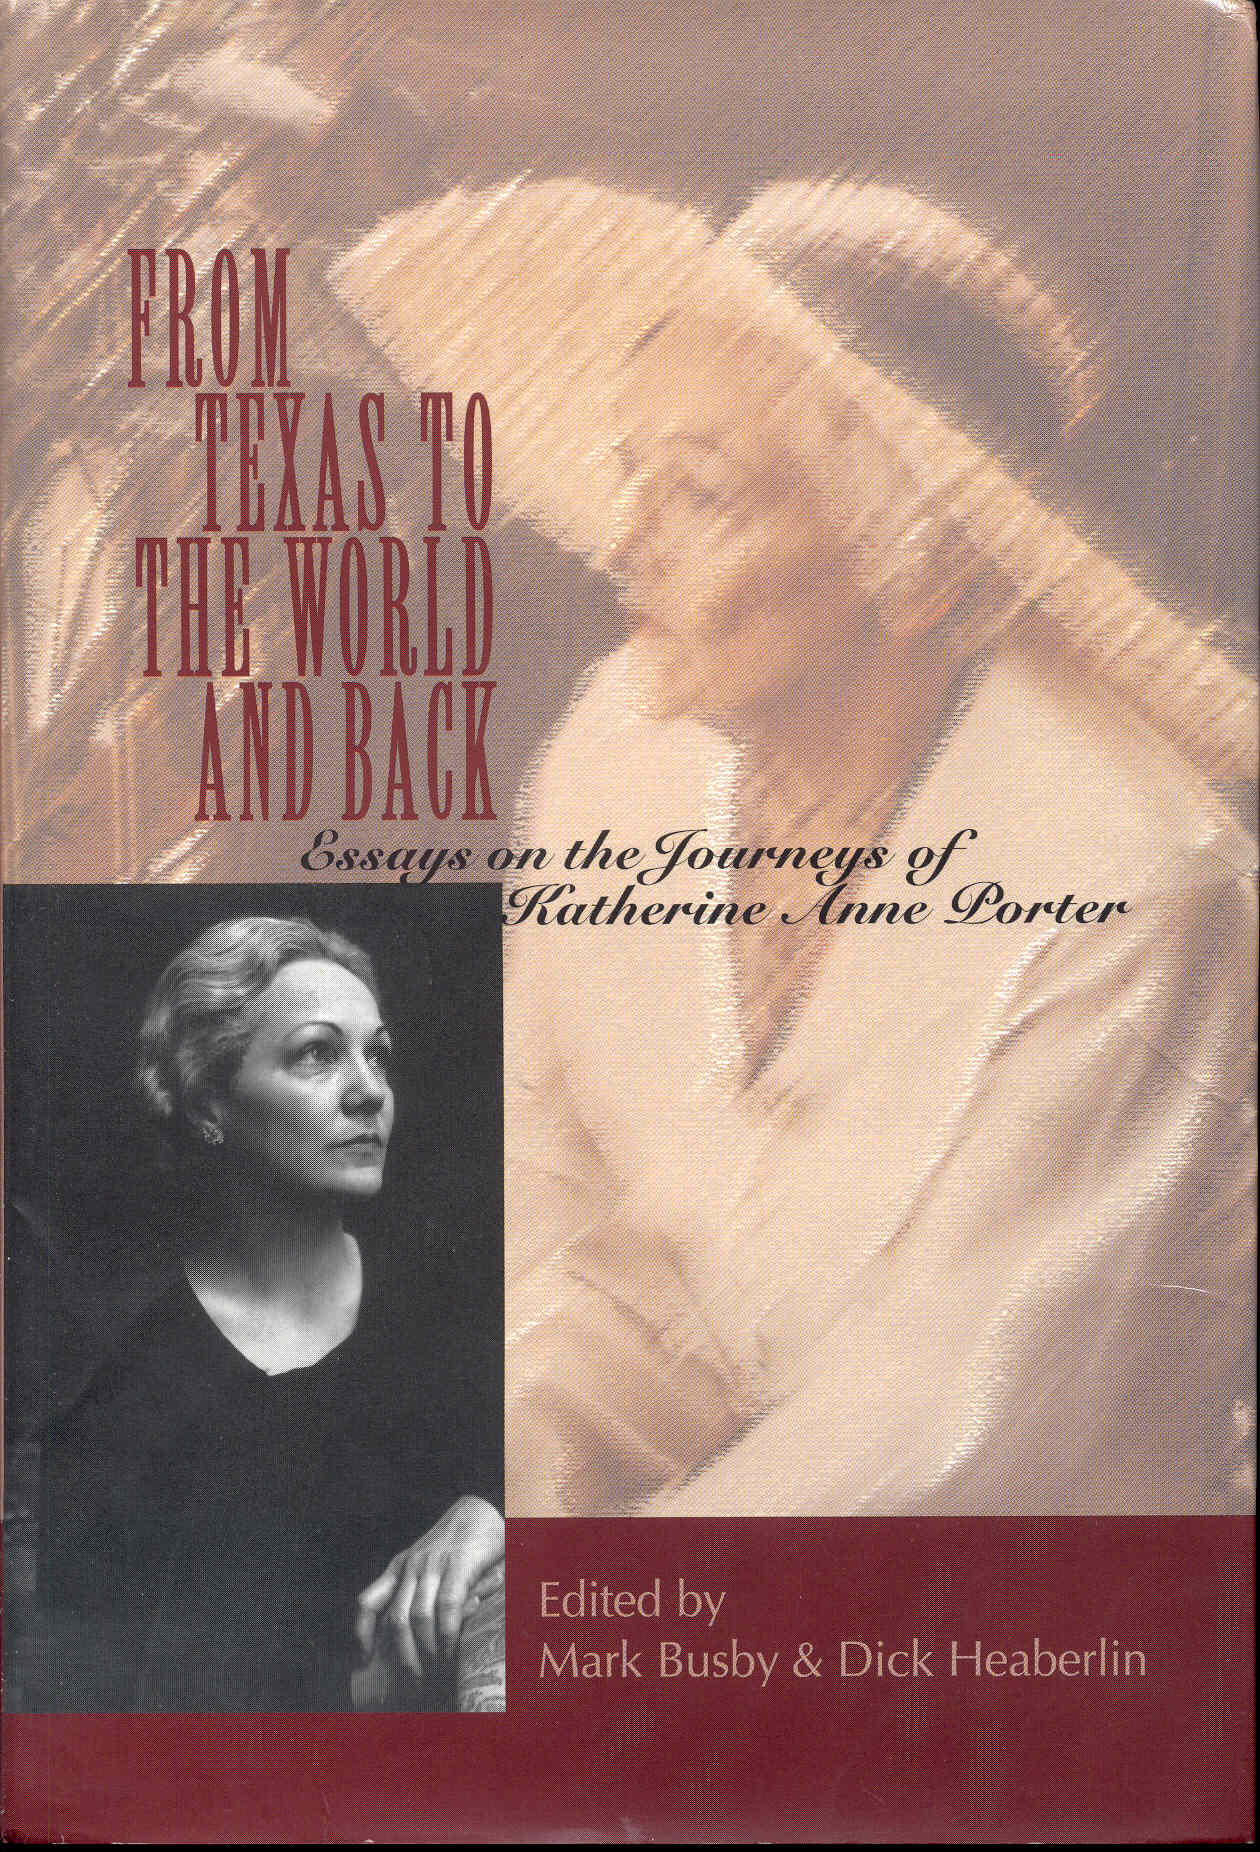 Image for From Texas to the World and Back: Essays on the Journeys of Katherine Anne Porter